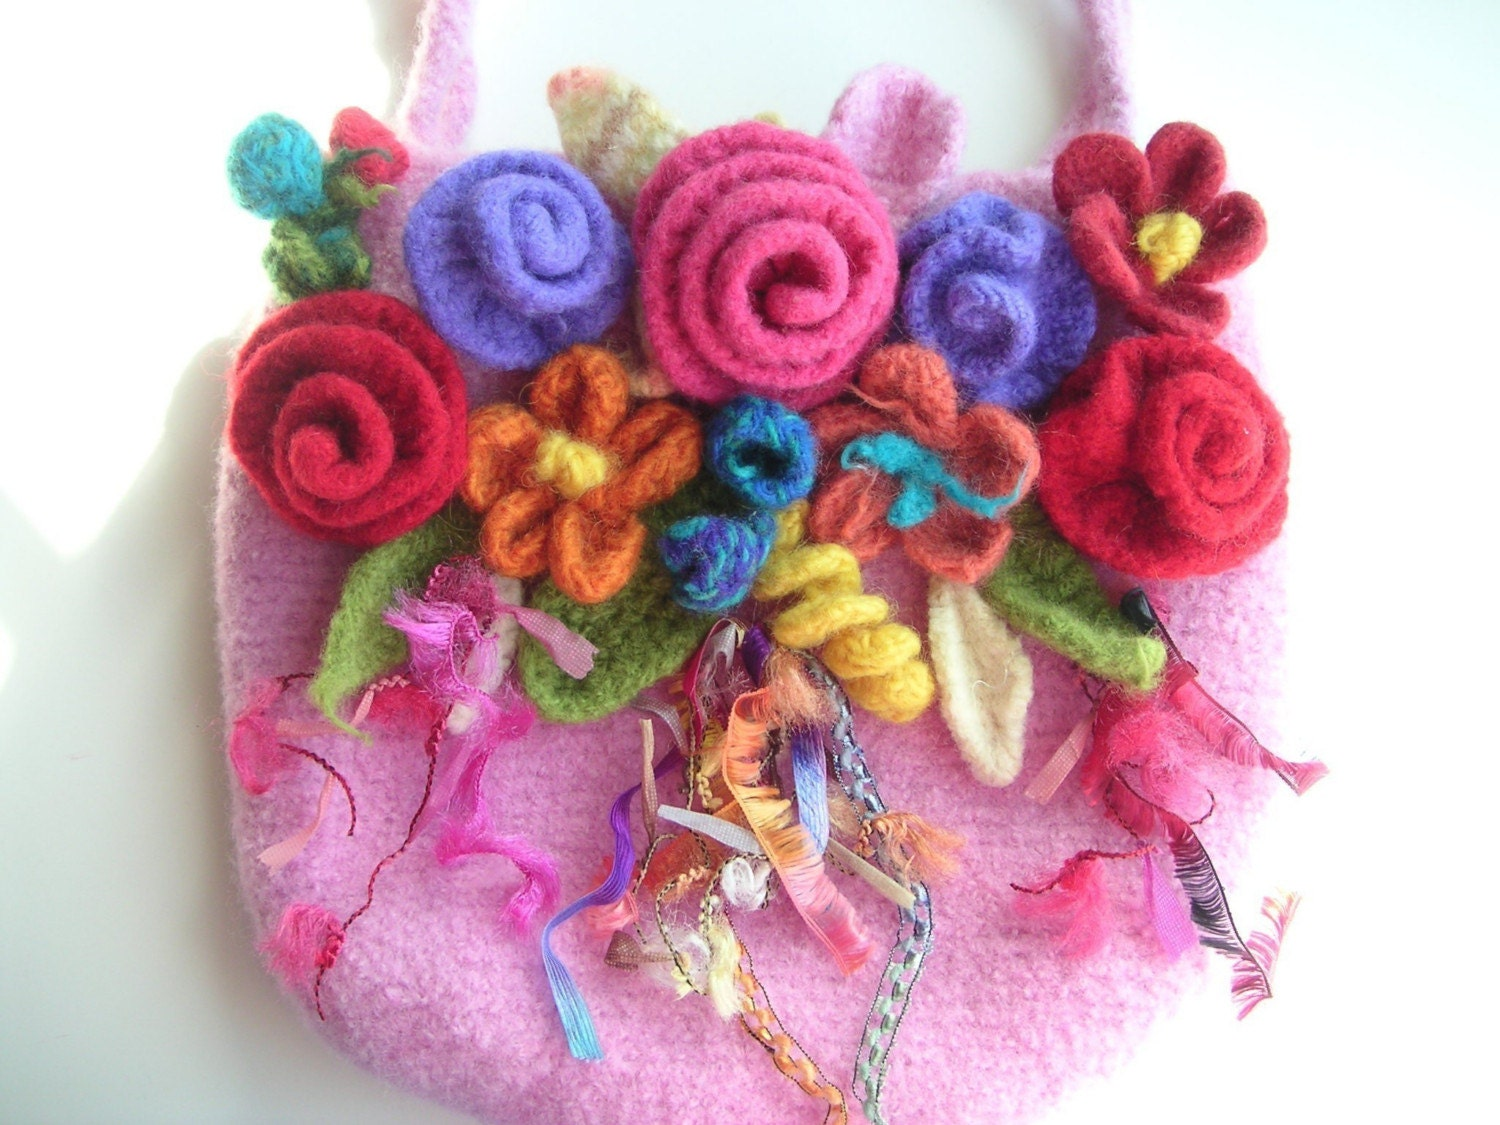 Felted Crochet : Knit Felt in Love with Crochet - Felting